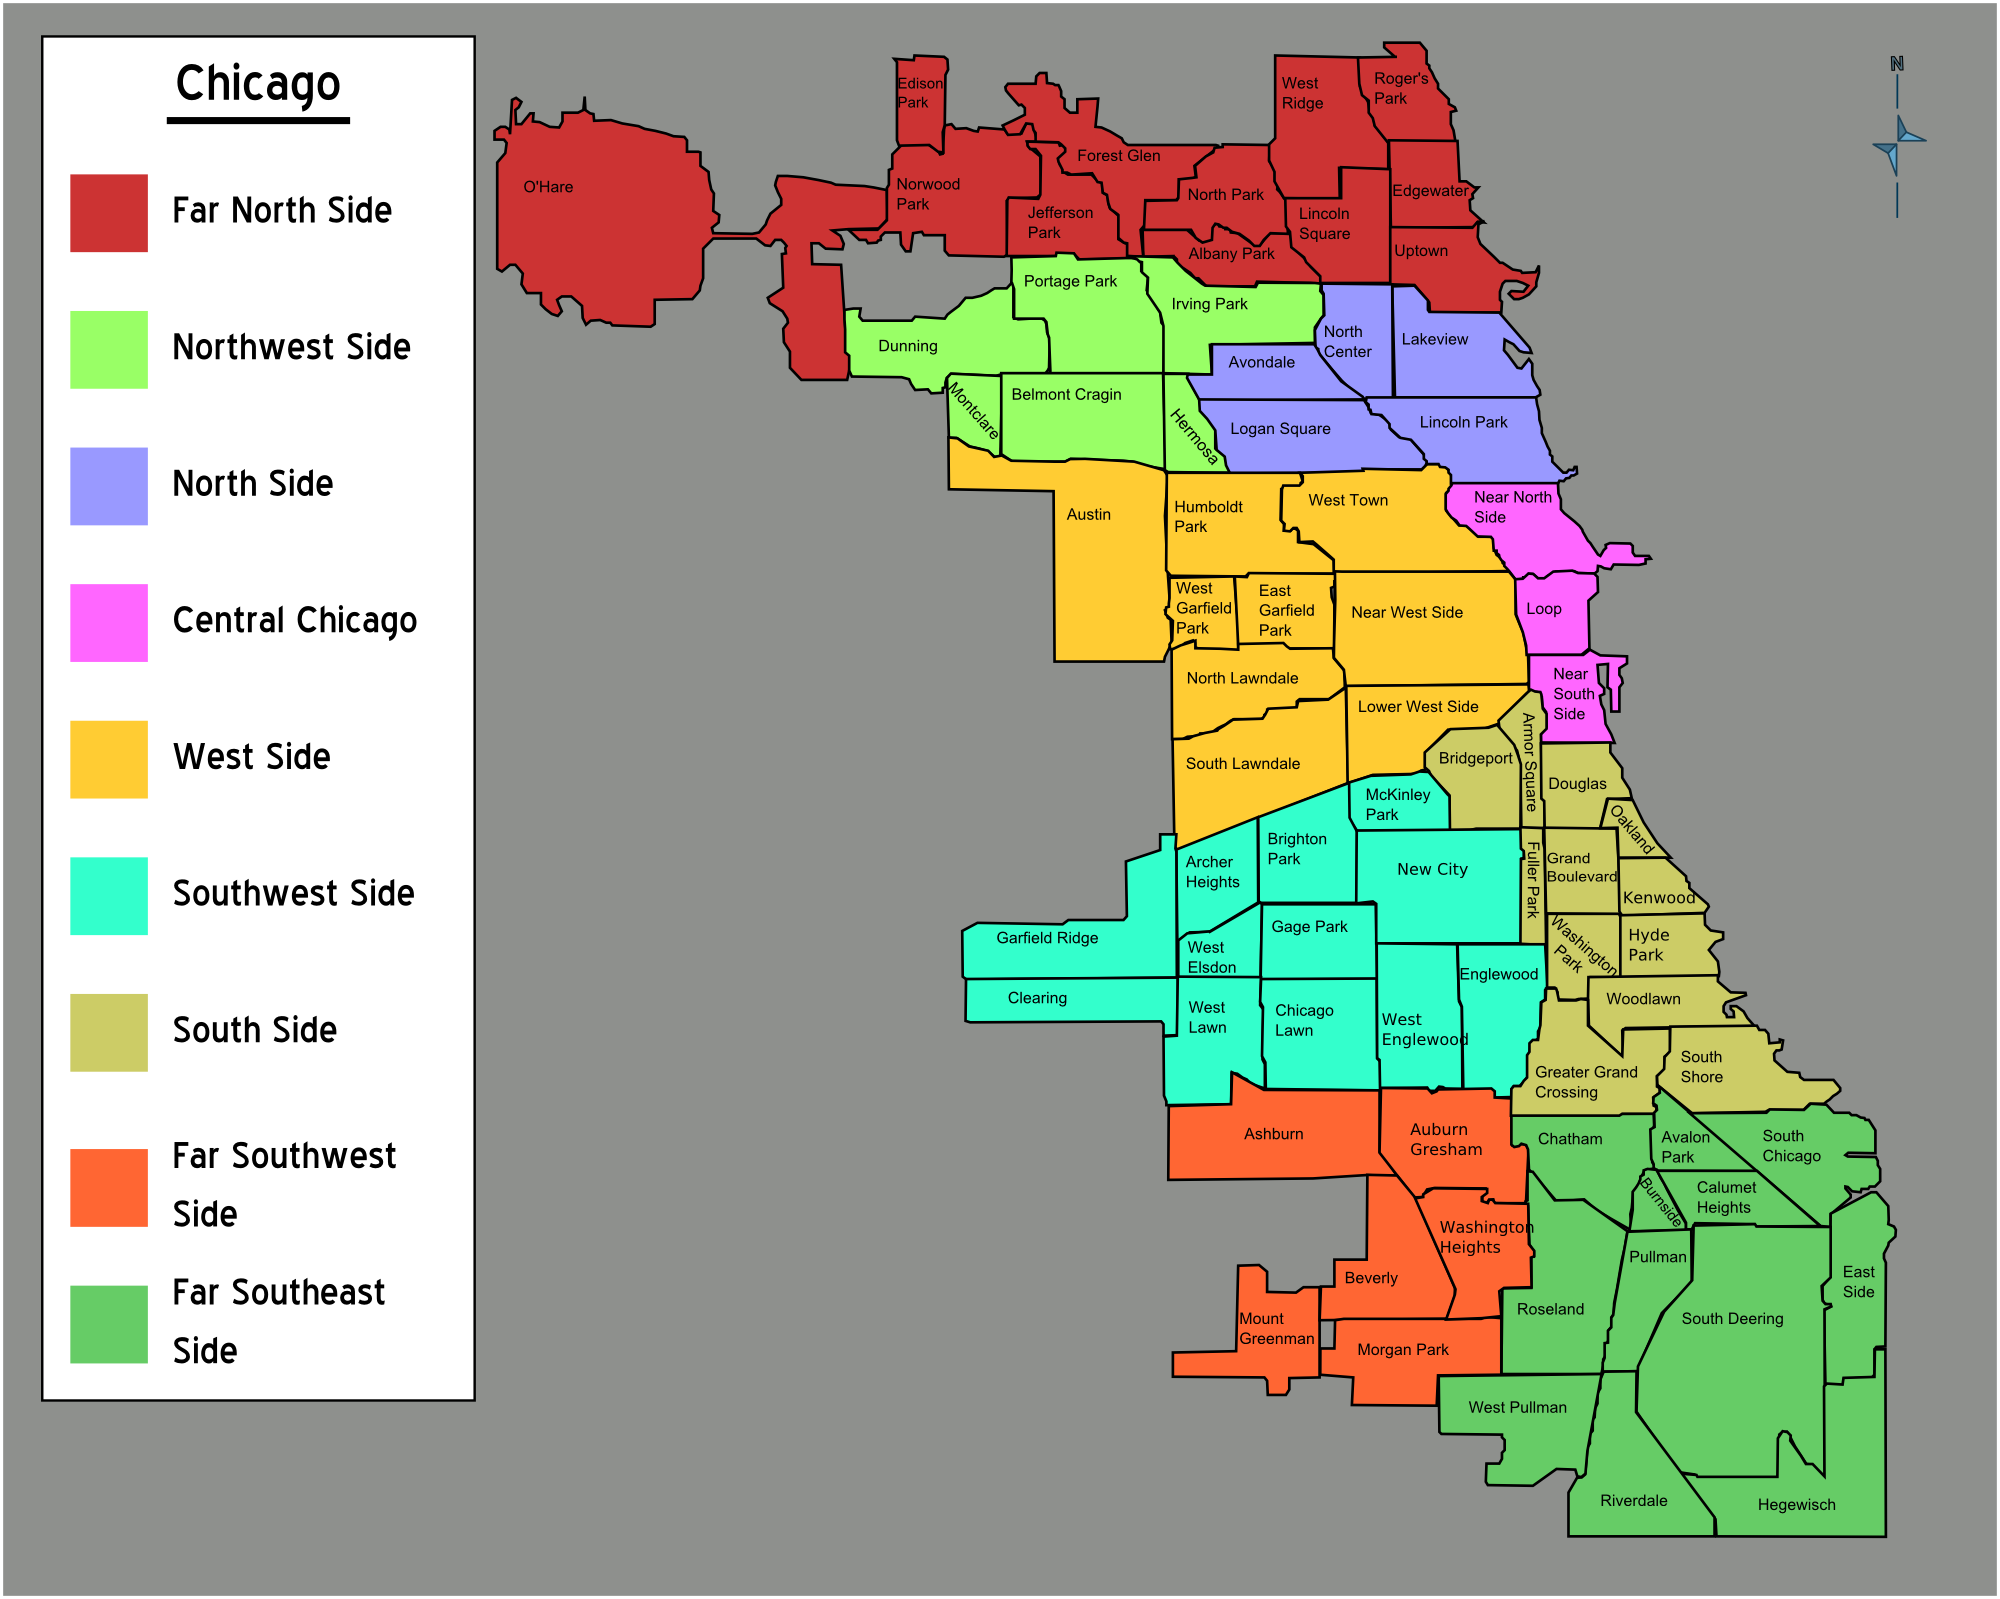 Cicago Neighborhood Map File:Chicago neighborhoods map.png